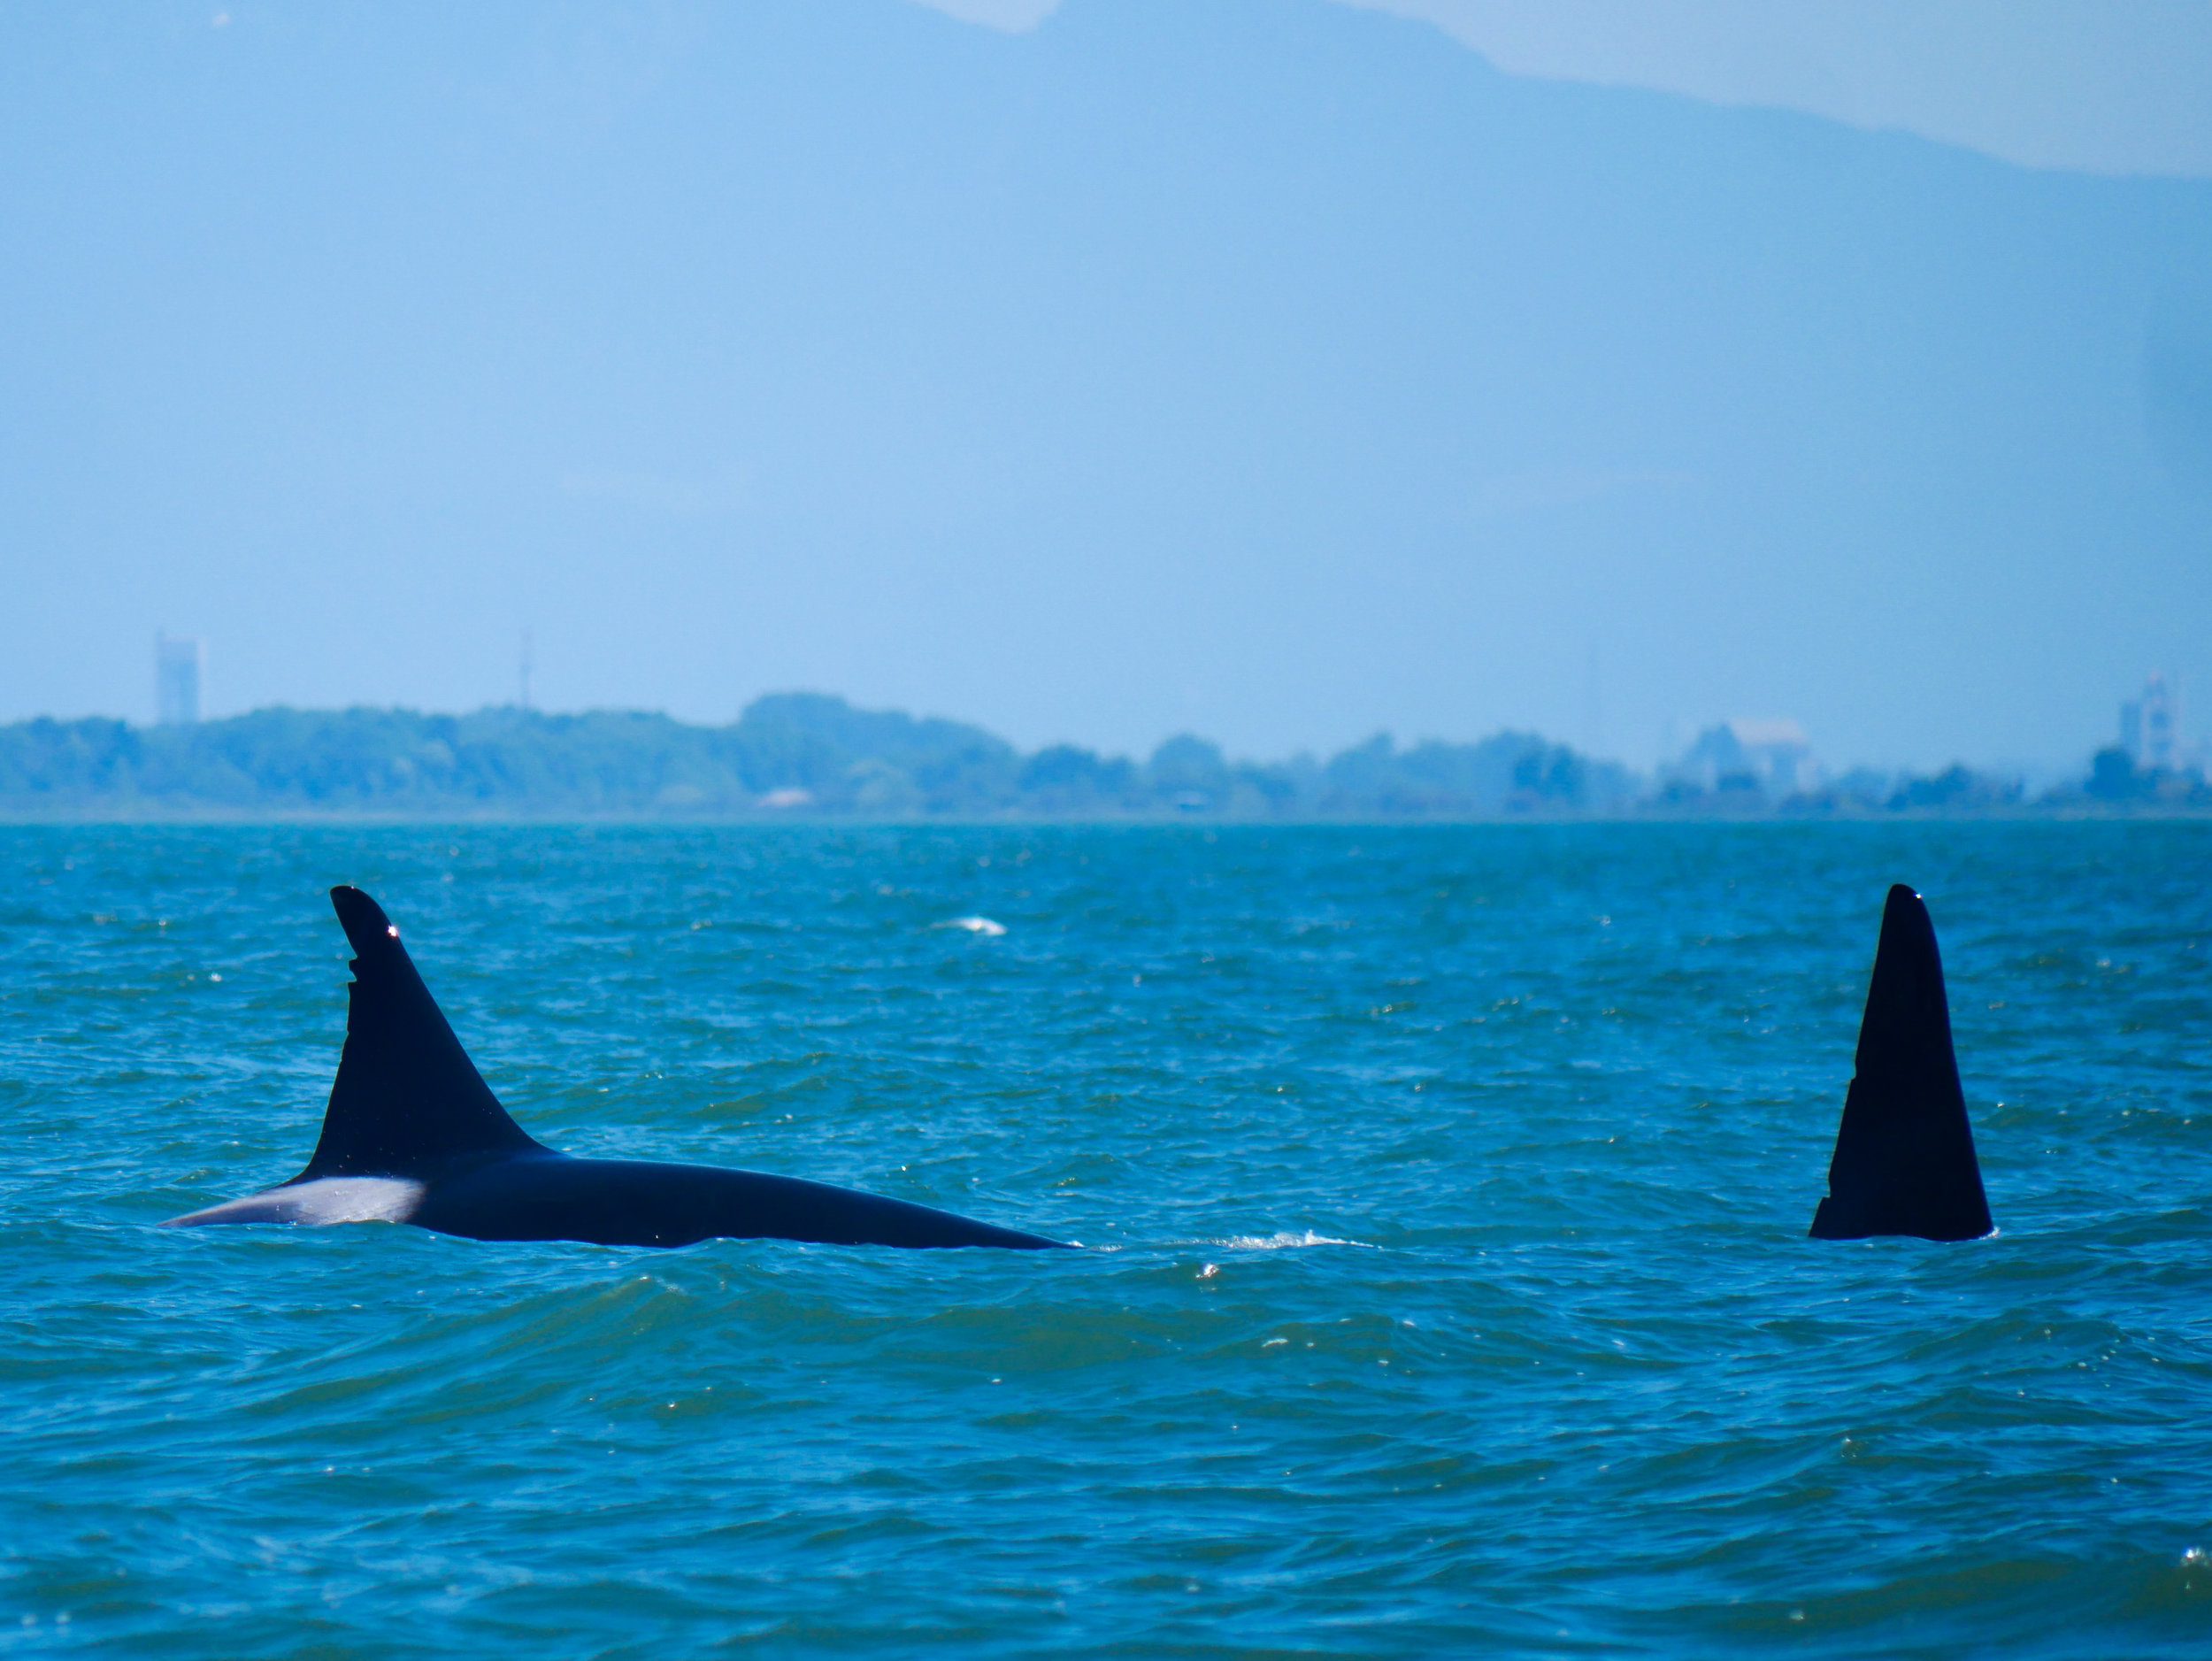 T46D (left) and T46 (right) surfacing together. T46D (18 years old, male) is the offspring of T46 (~54 years old). Photo by Alanna Vivani.